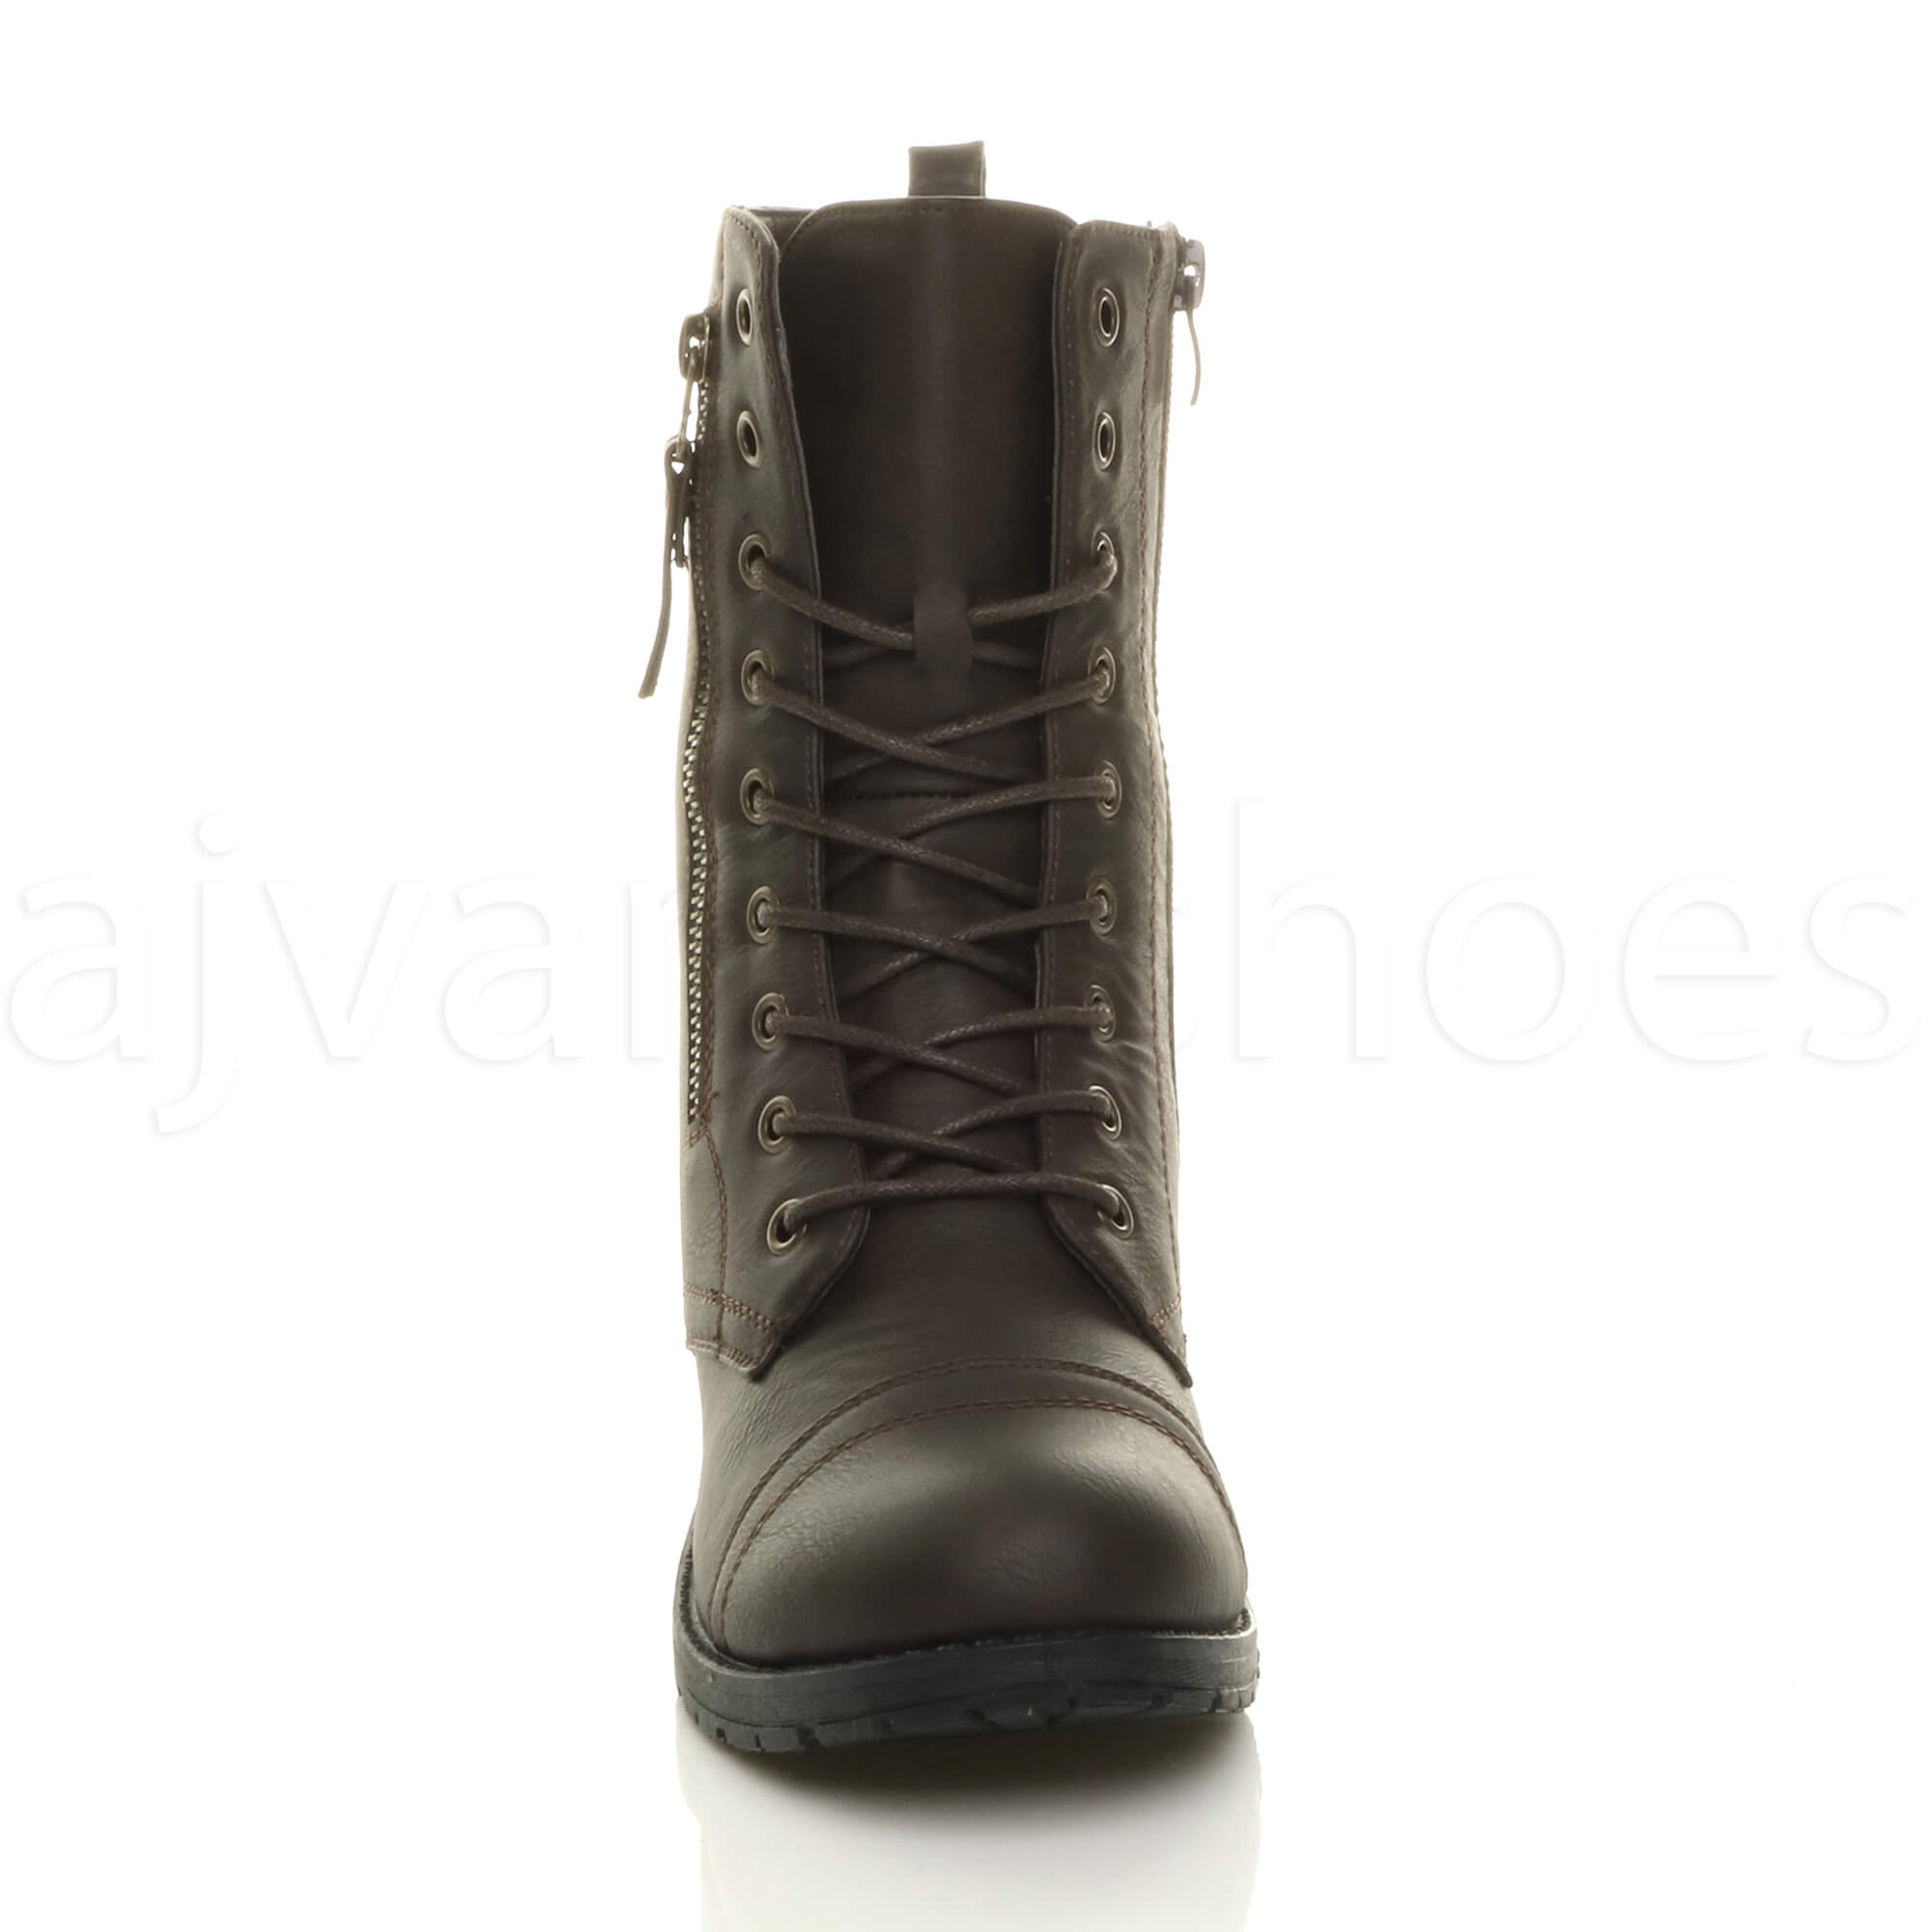 WOMENS-LADIES-FLAT-LOW-HEEL-LACE-UP-ZIP-COMBAT-ARMY-MILITARY-ANKLE-BOOTS-SIZE